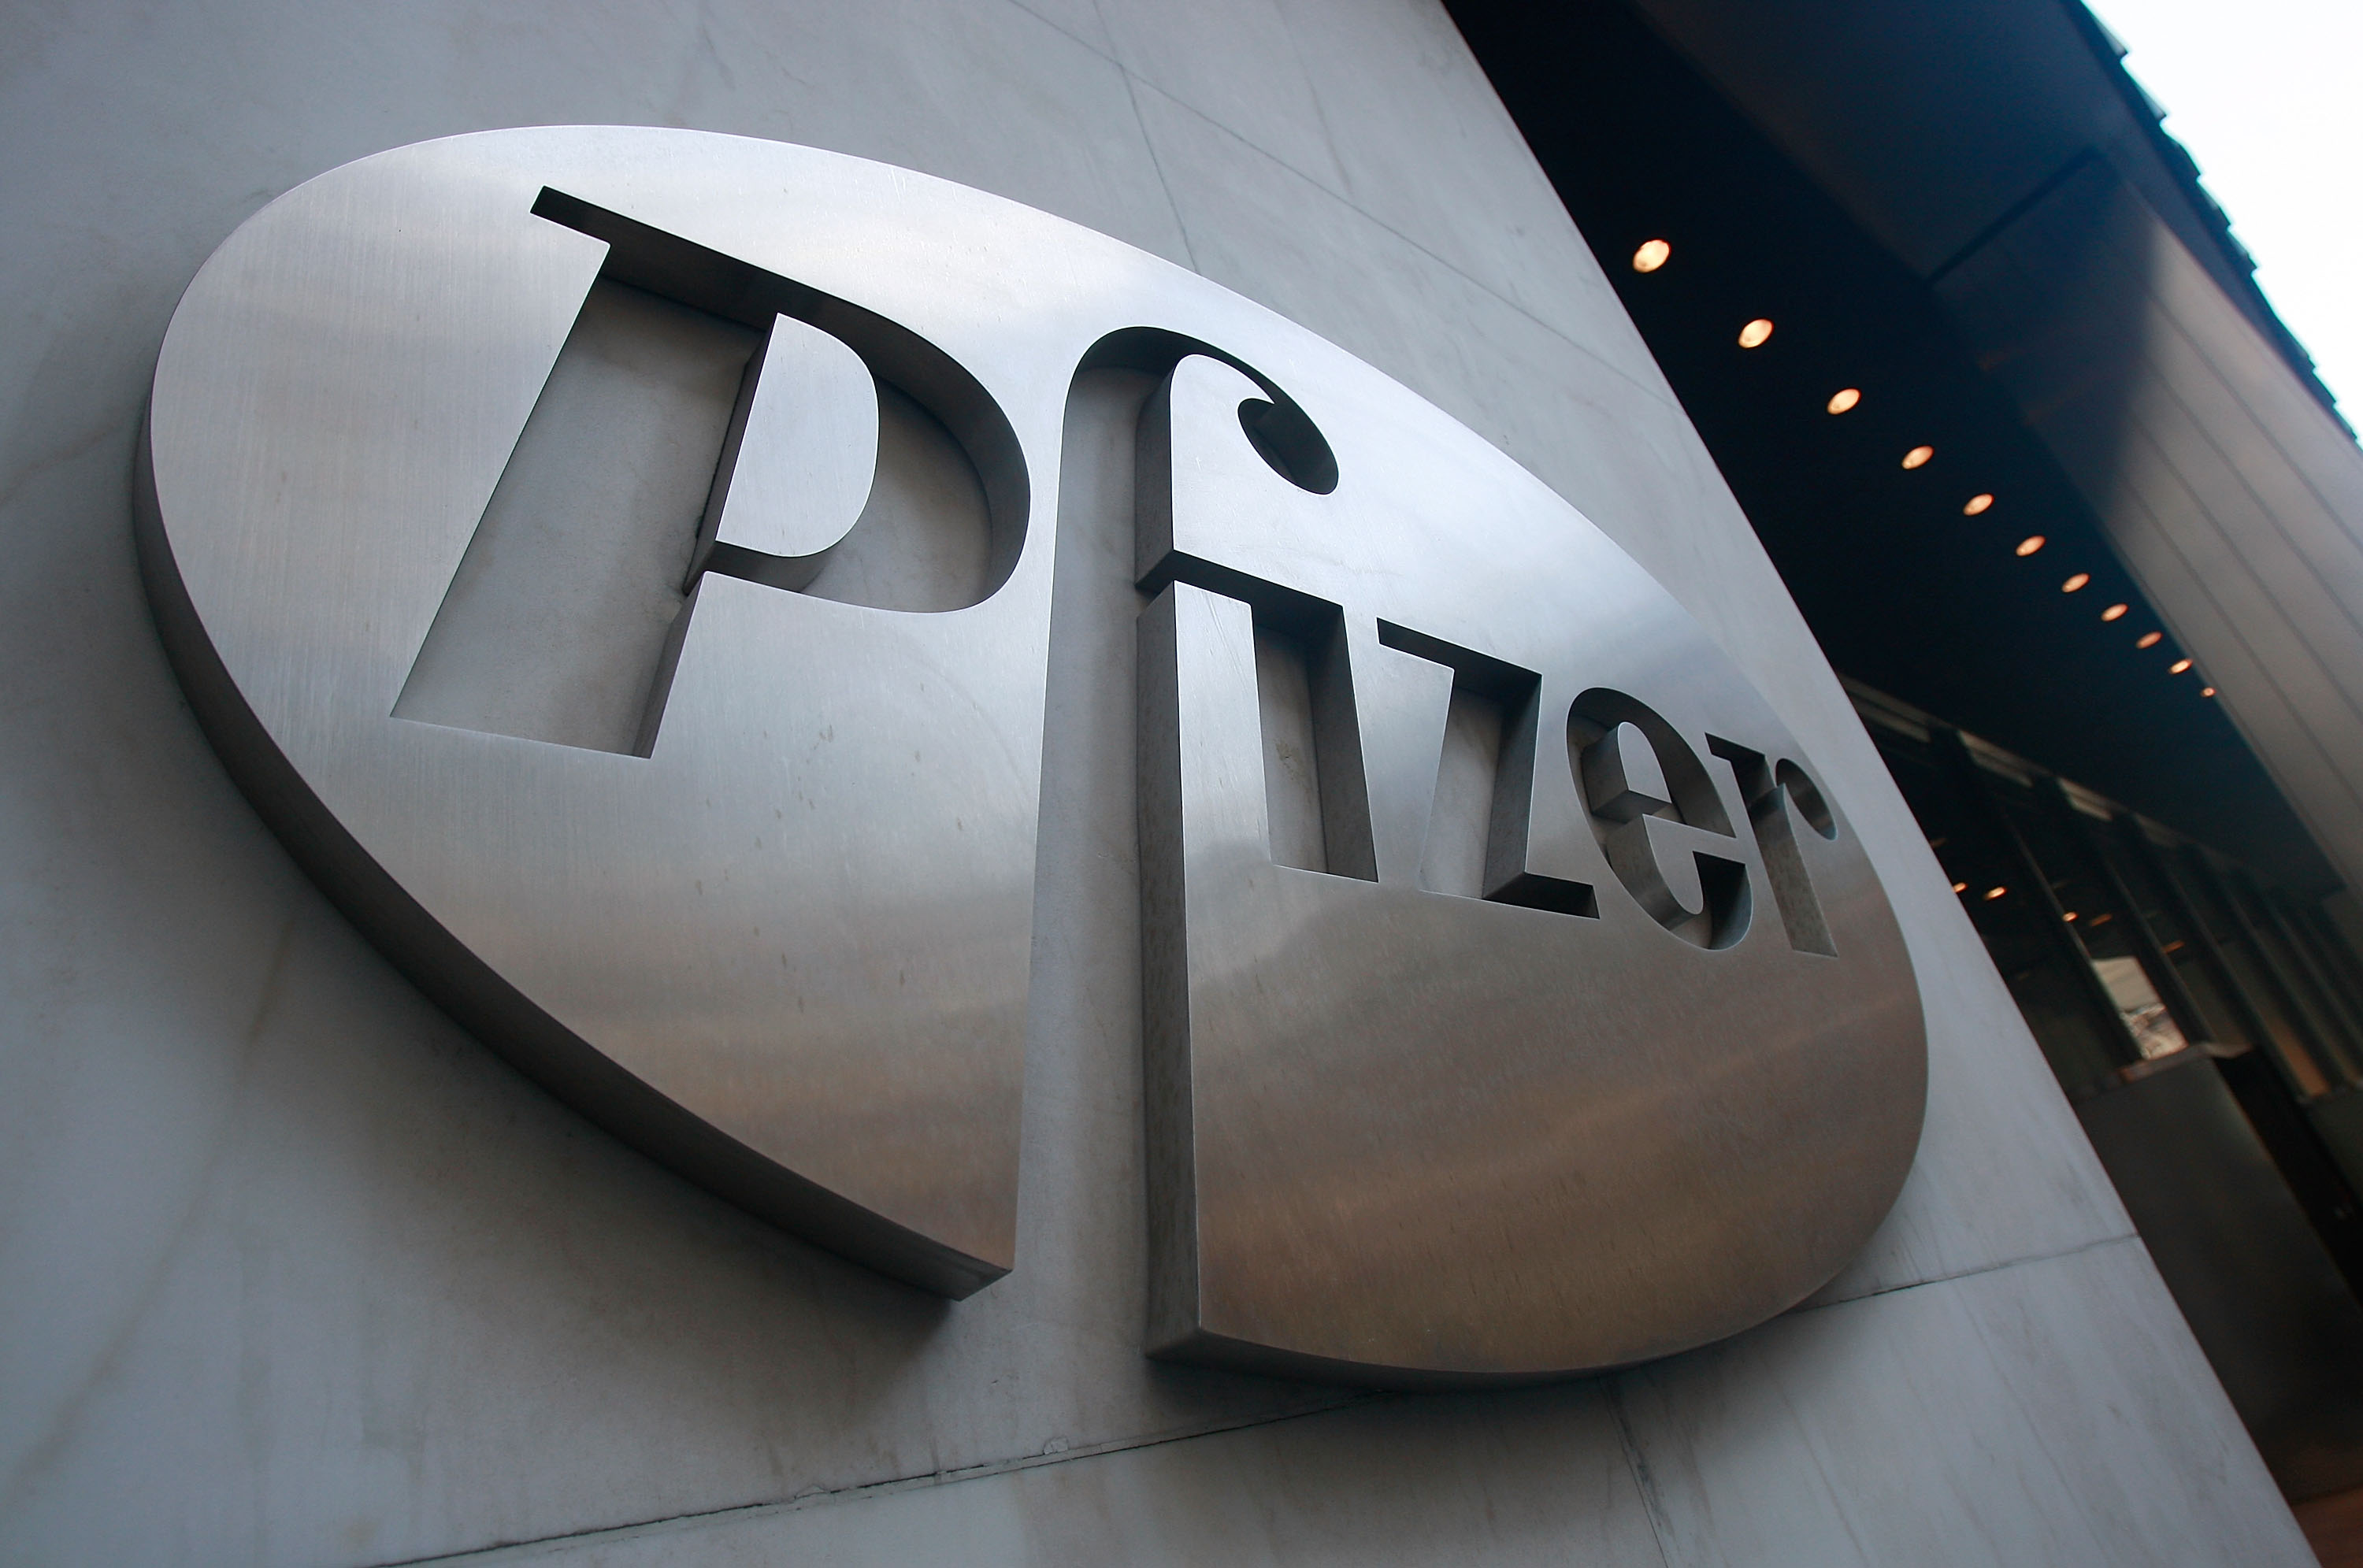 Trump got Pfizer to reverse its drug price hikes — but he gave up some big concessions